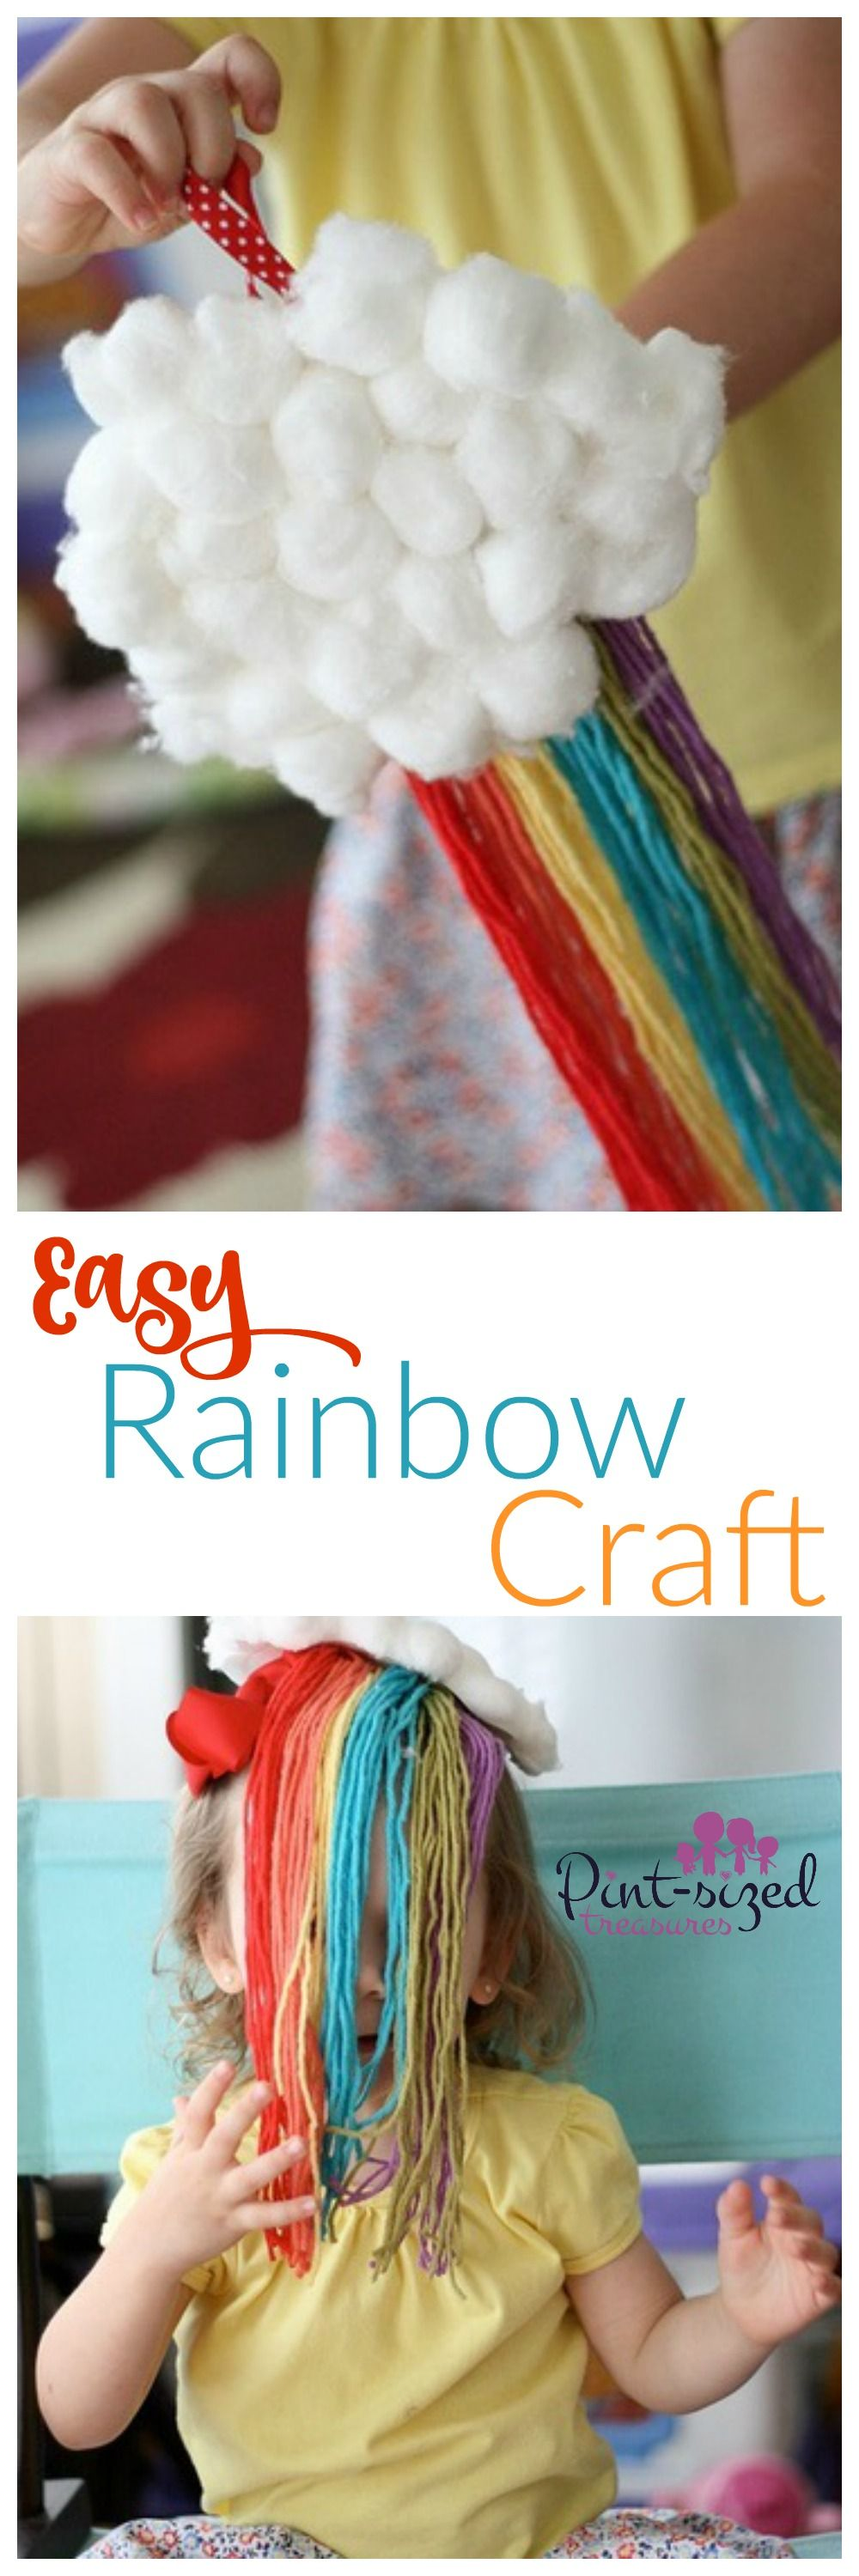 This super easy rainbow craft is perfect for giggly toddlers and preschoolers who love rainbows. Just a few materials makes this gorgeous, colorful craft! @alicanwrite #rainbowcrafts